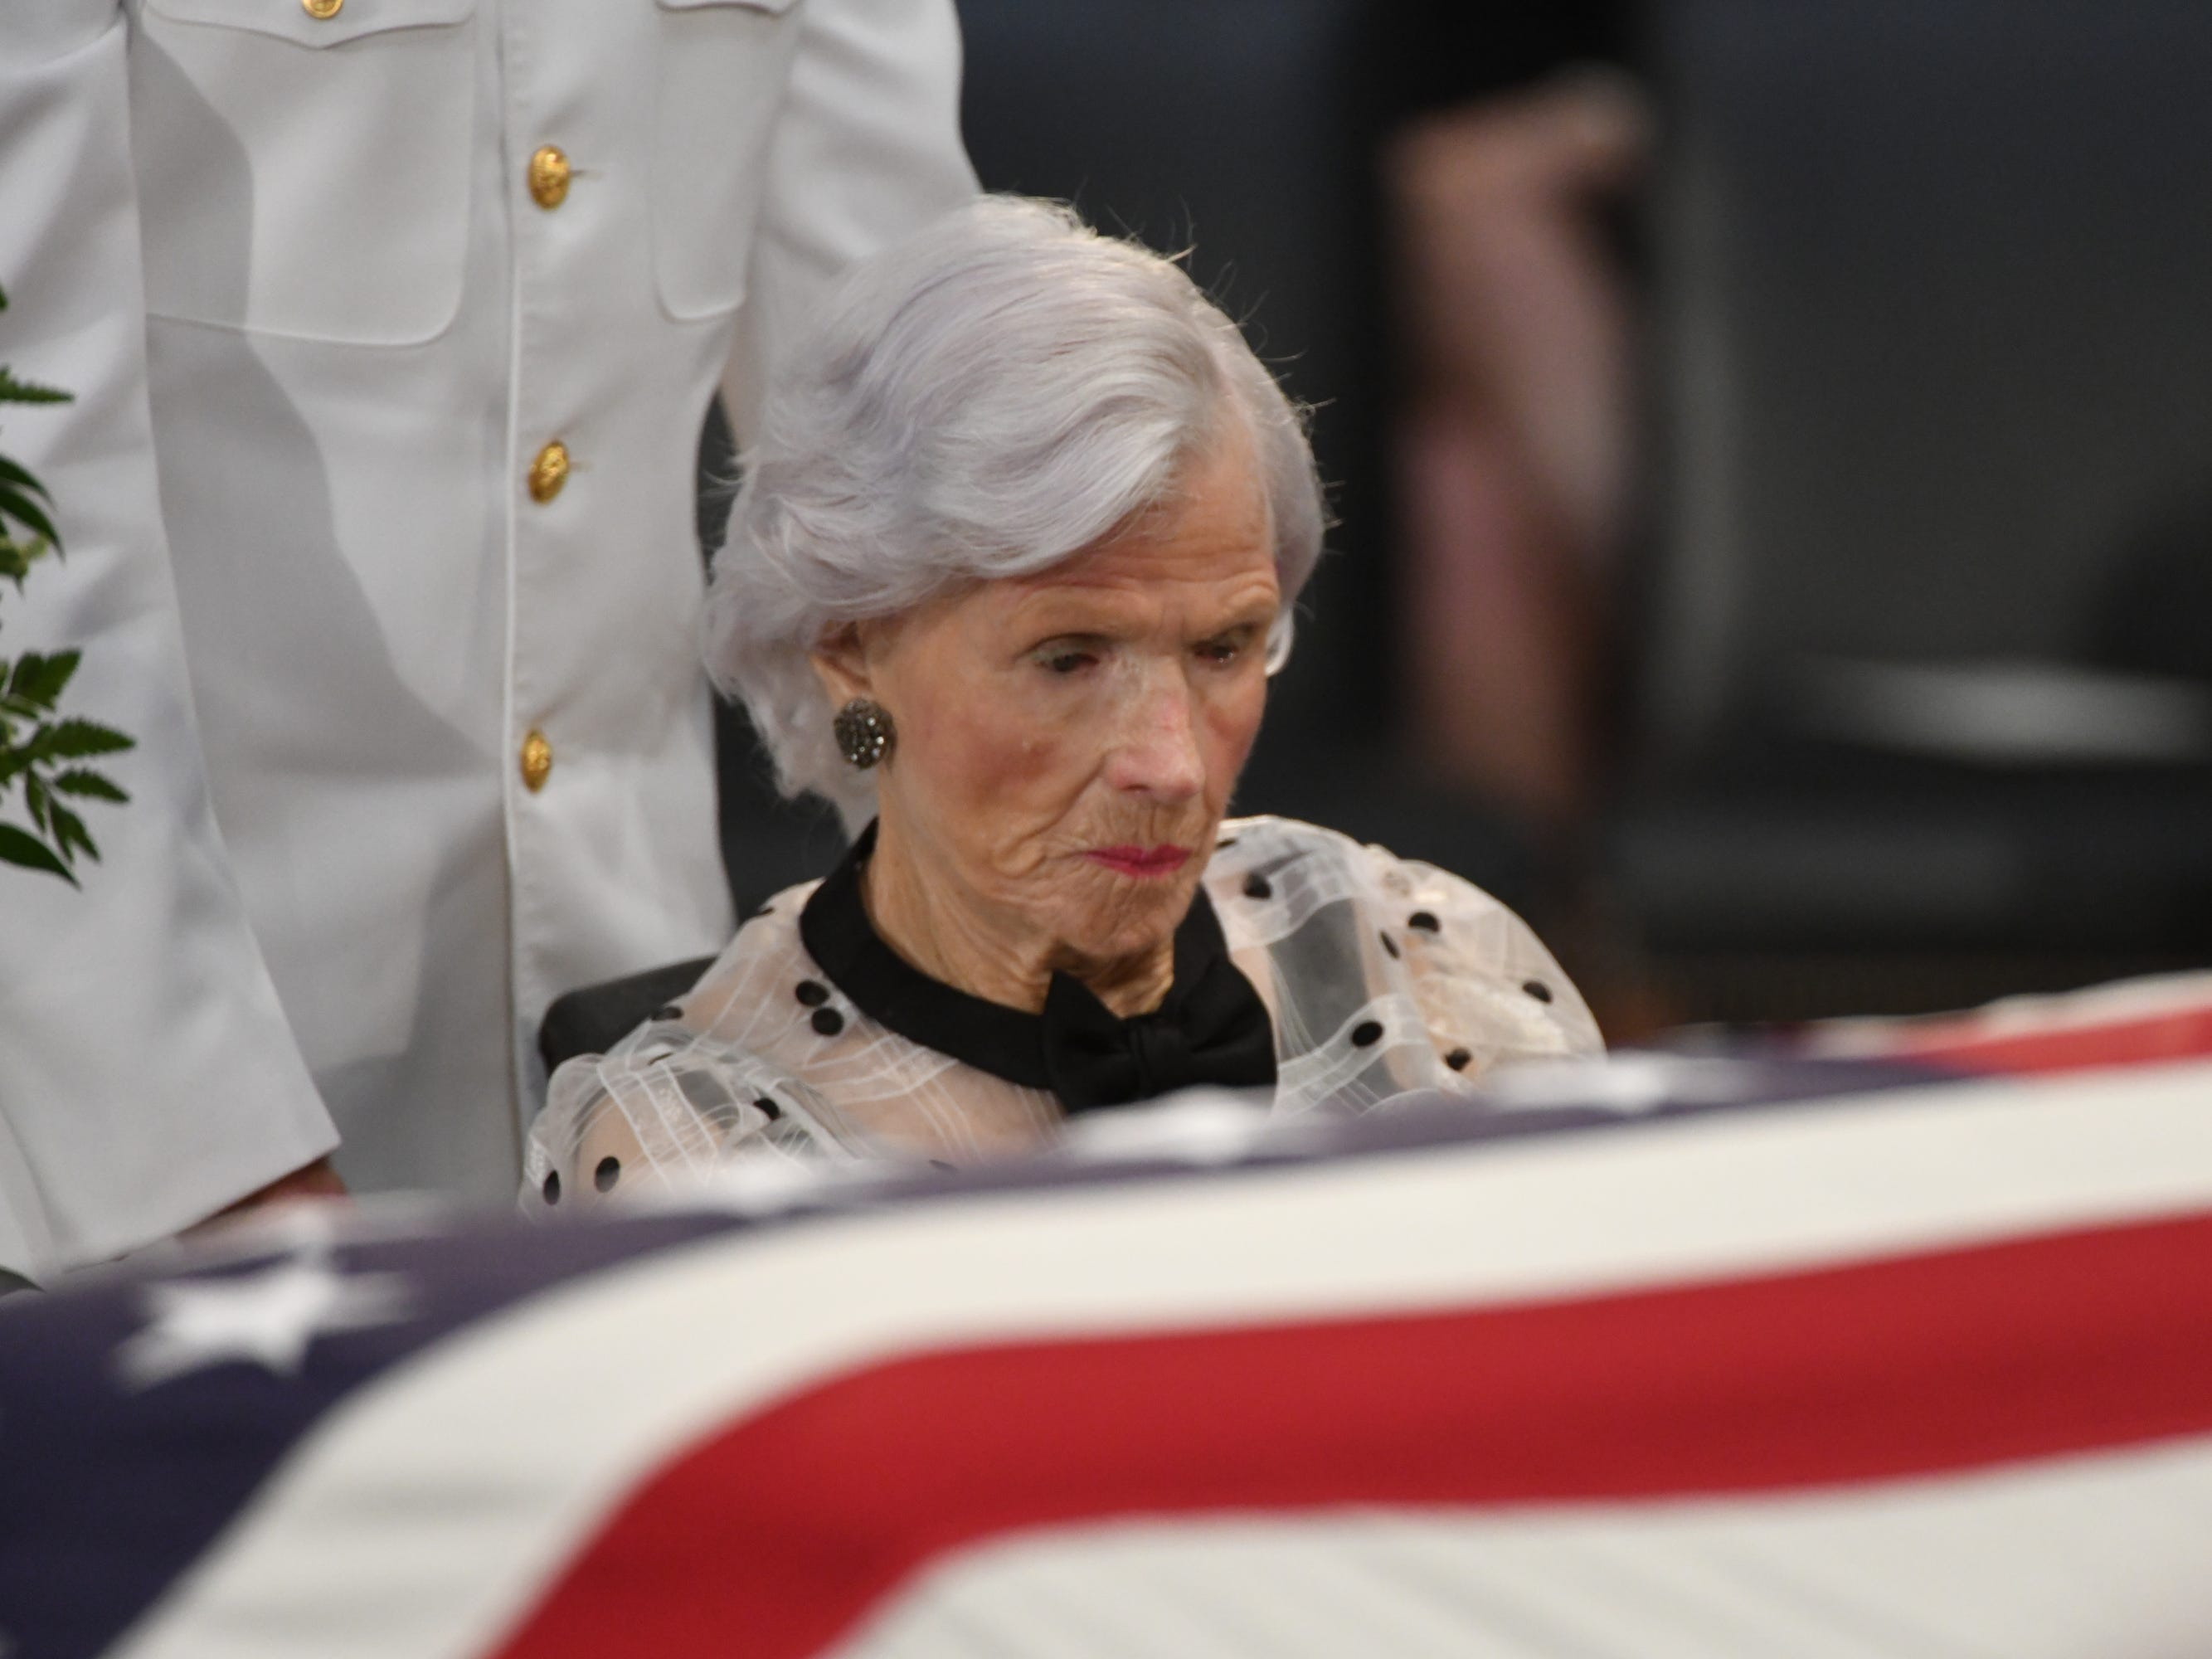 8/31/18 11:26:03 AM -- Washington, DC, U.S.A  -- Roberta McCain pays her respects as the body of her son, John McCain, lies in state at the U.S. Capitol in Washington on Aug. 31, 2018 in Washington. Sen. McCain died on Aug. 25. --    Photo by Jasper Colt, USA TODAY Staff ORG XMIT:  JC 137436 McCain U.S. Capi 8/31/2018 (Via OlyDrop)